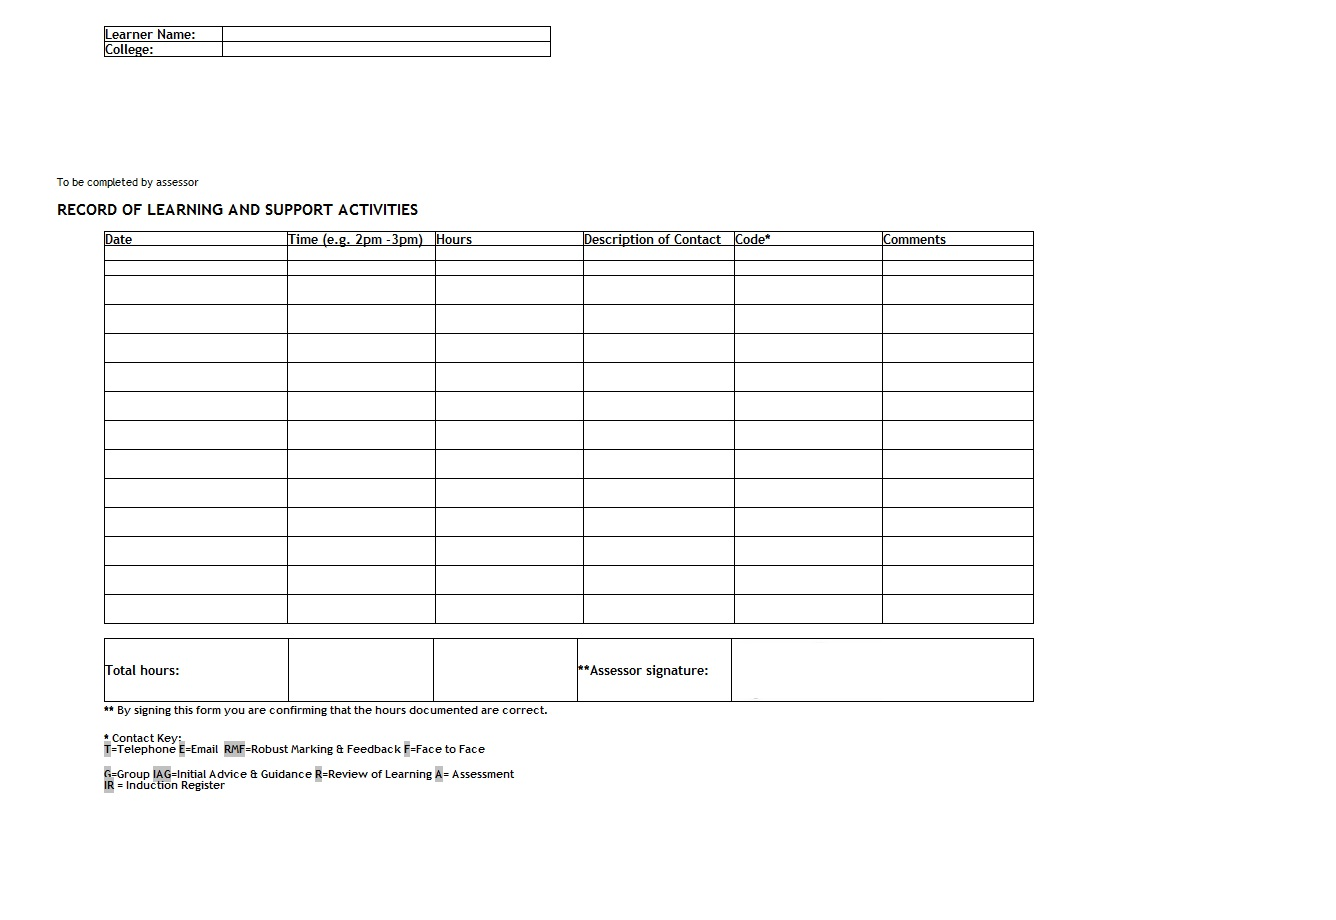 Network Permissions Request Form Template Sample